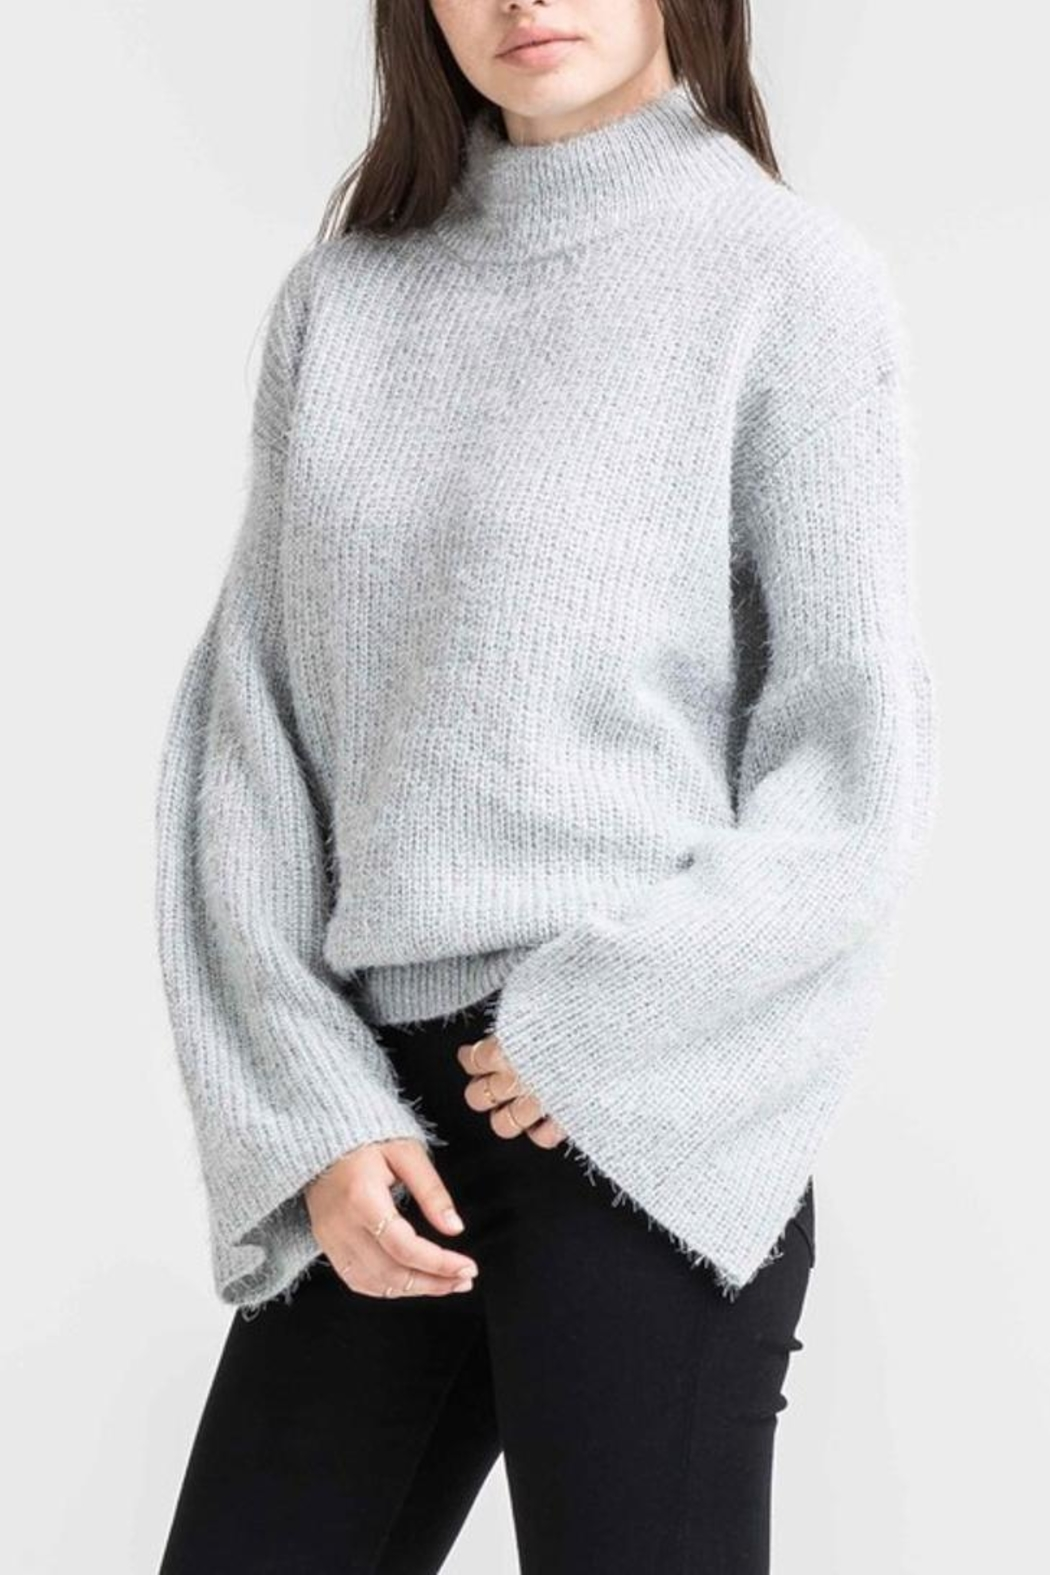 People Outfitter Hannah Sweater - Main Image